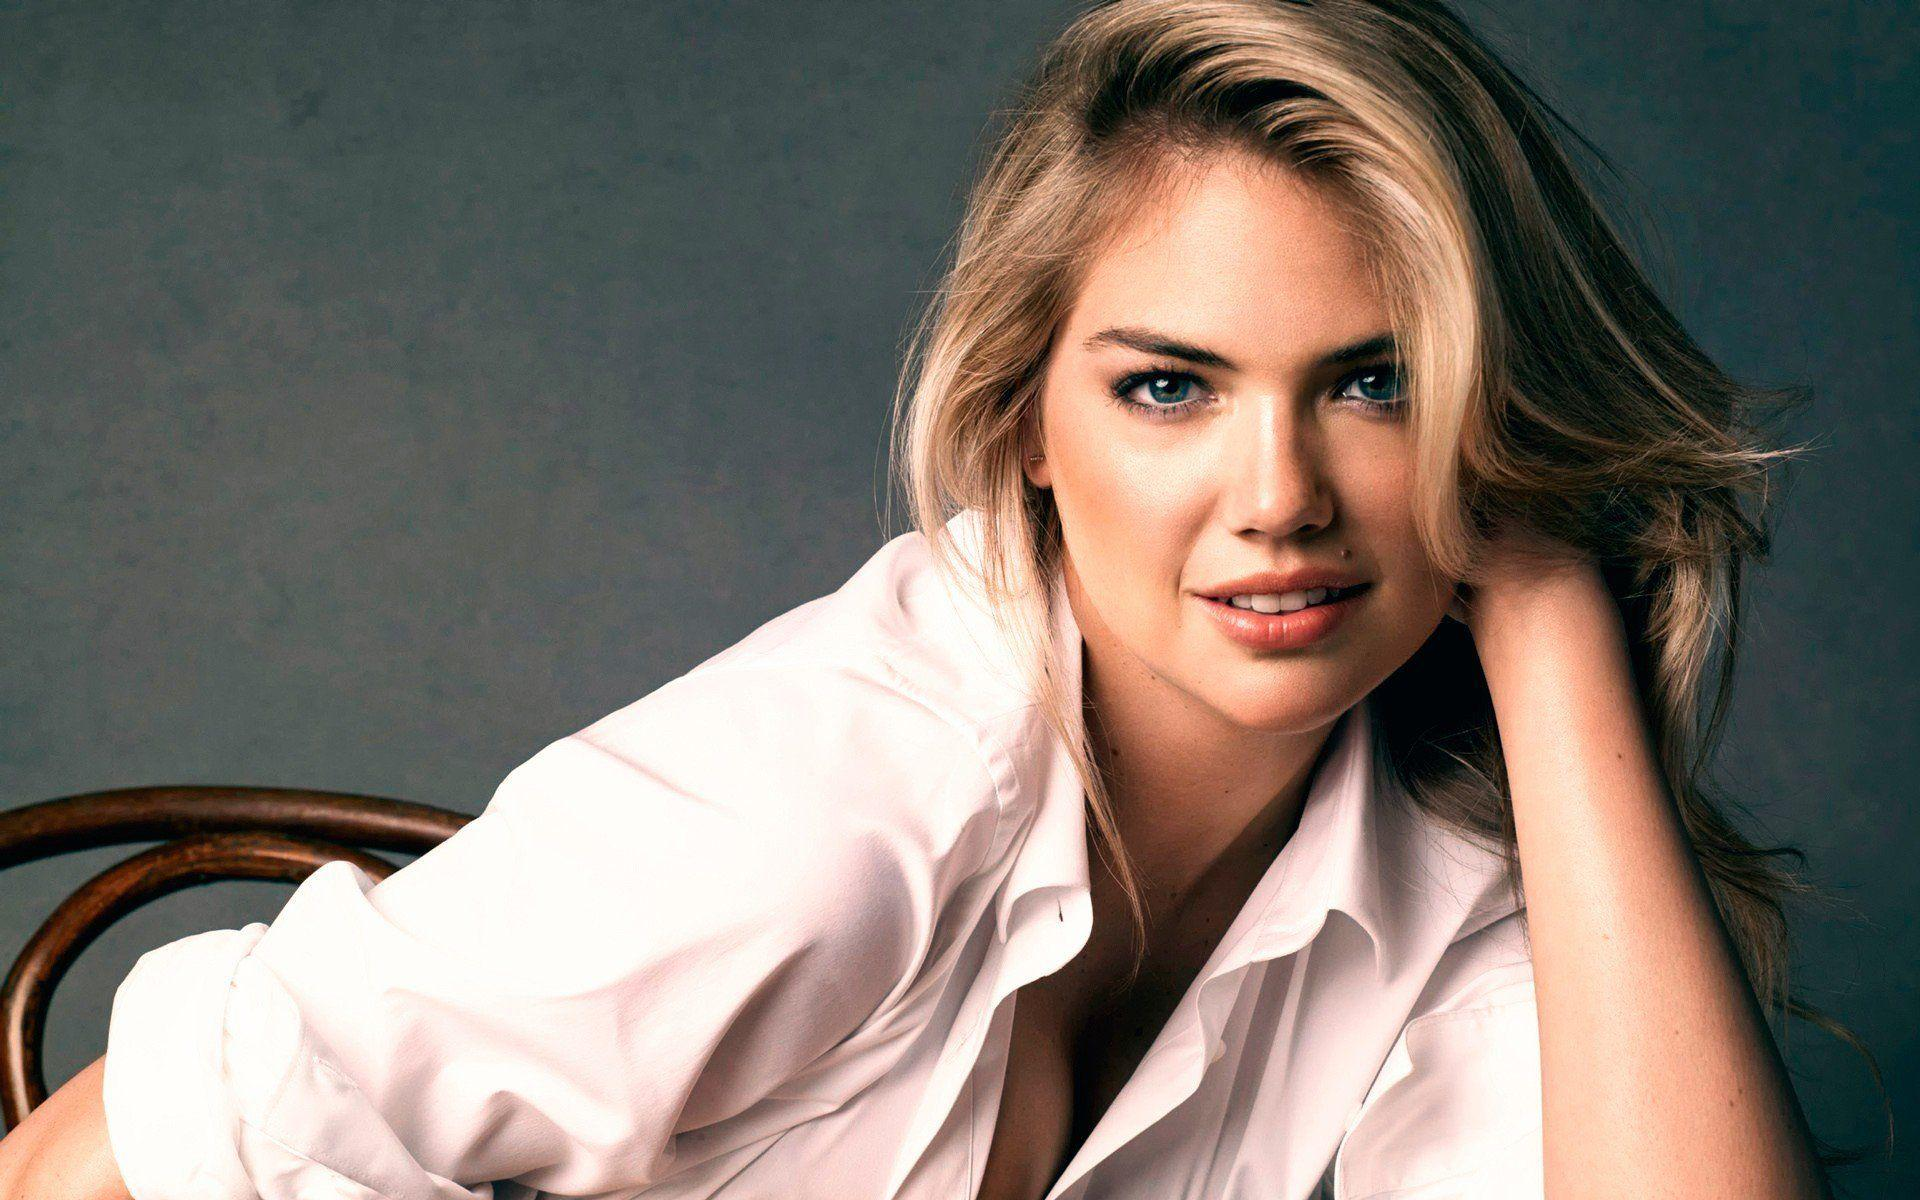 kate upton wallpaper download - photo #10